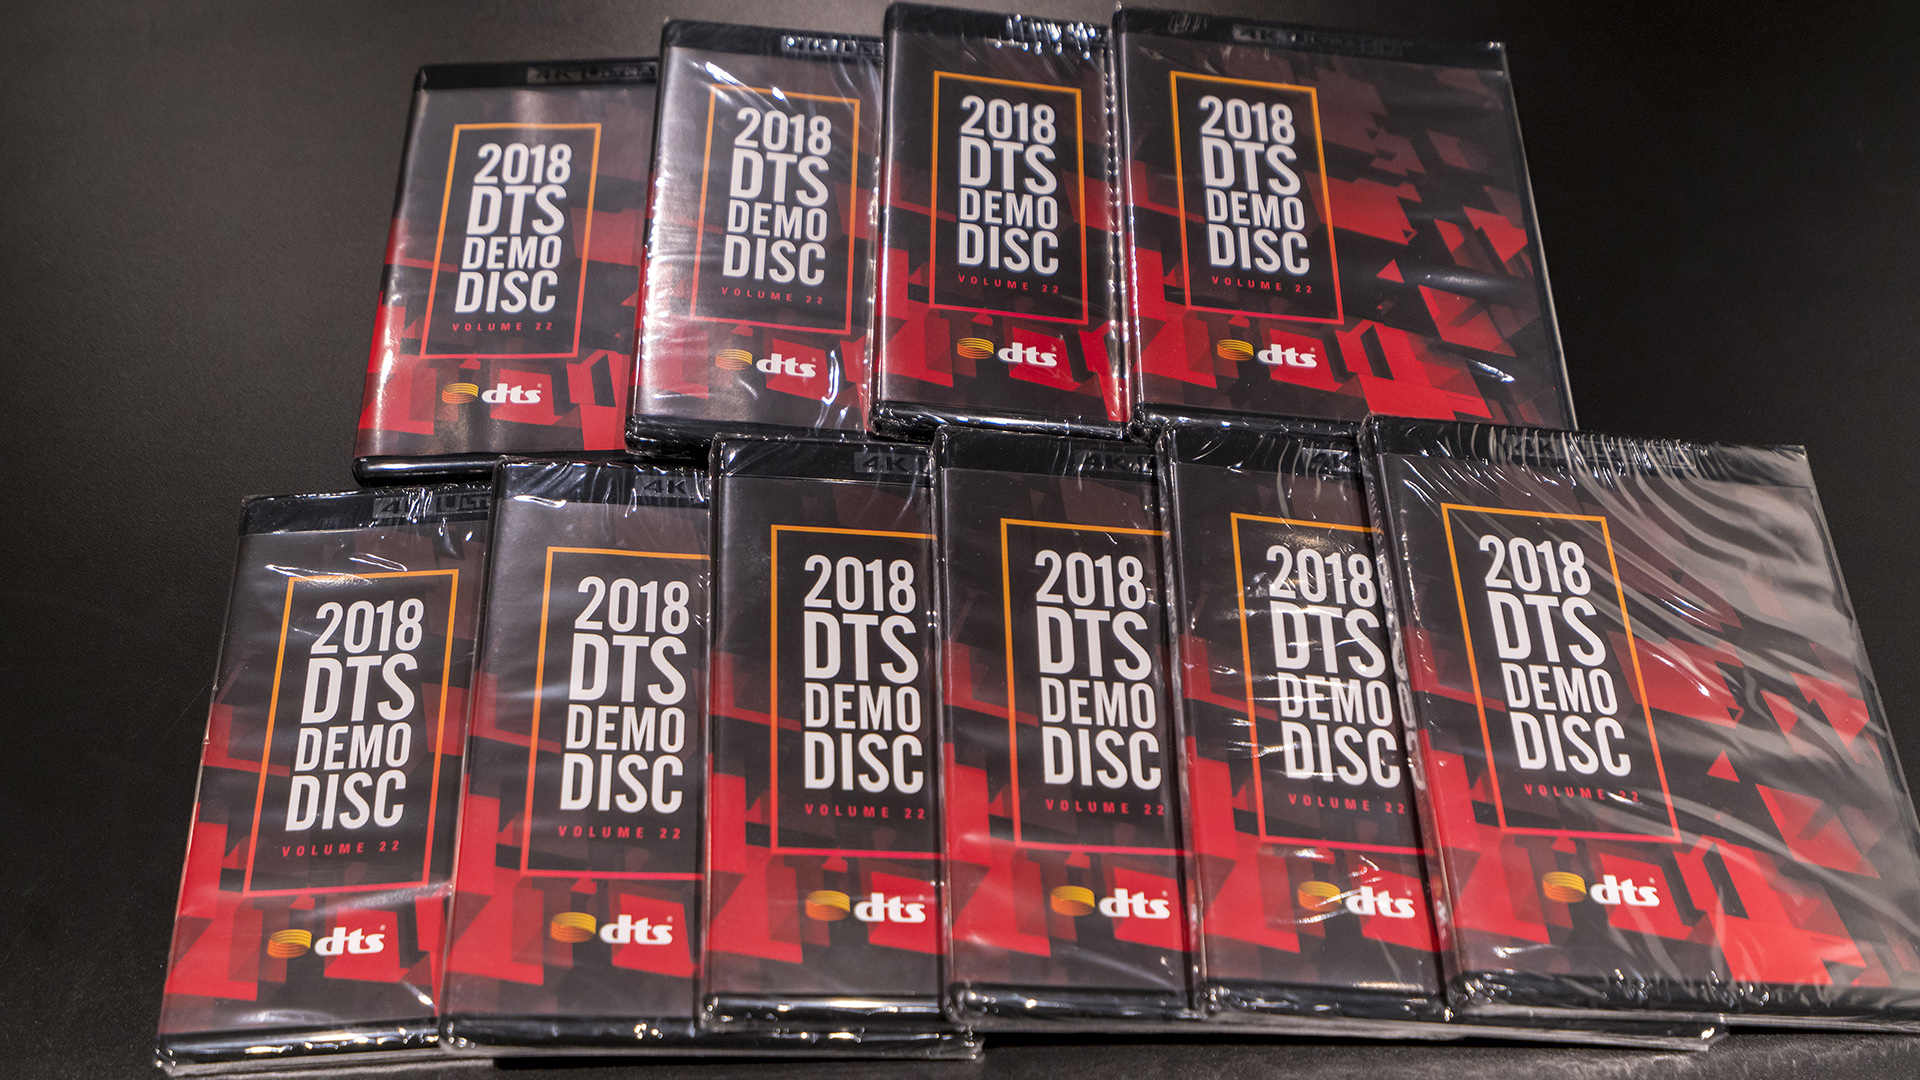 版主限定 2018 dts Blu-Ray Demo Disc(4K UHD)免費贈片